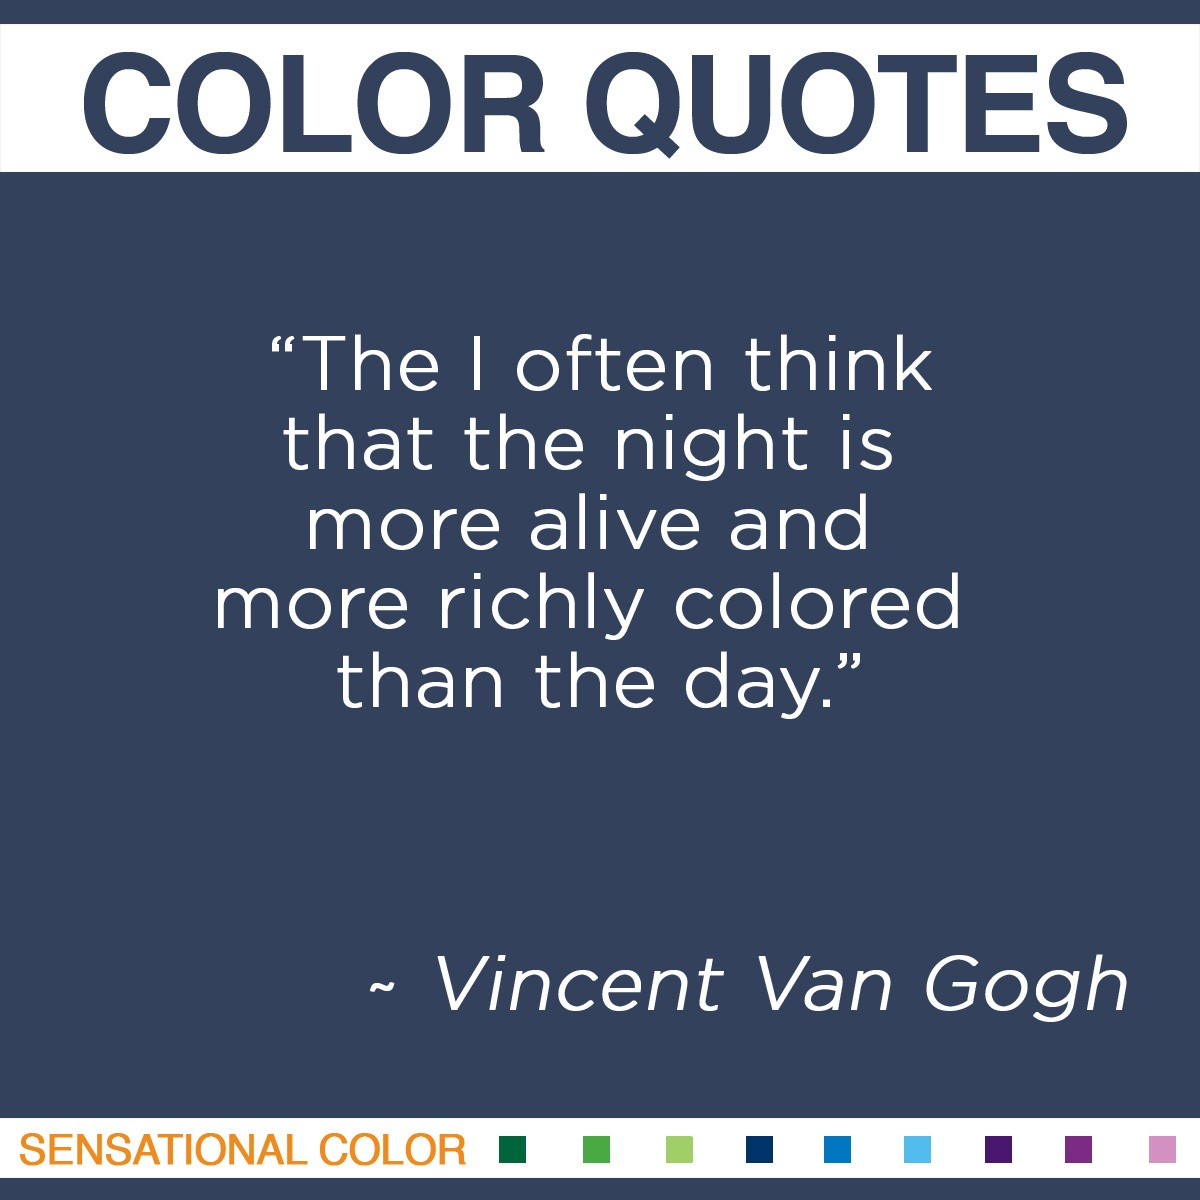 """I often think that the night is more alive and more richly colored than the day,"" - Vincent Van Gogh"